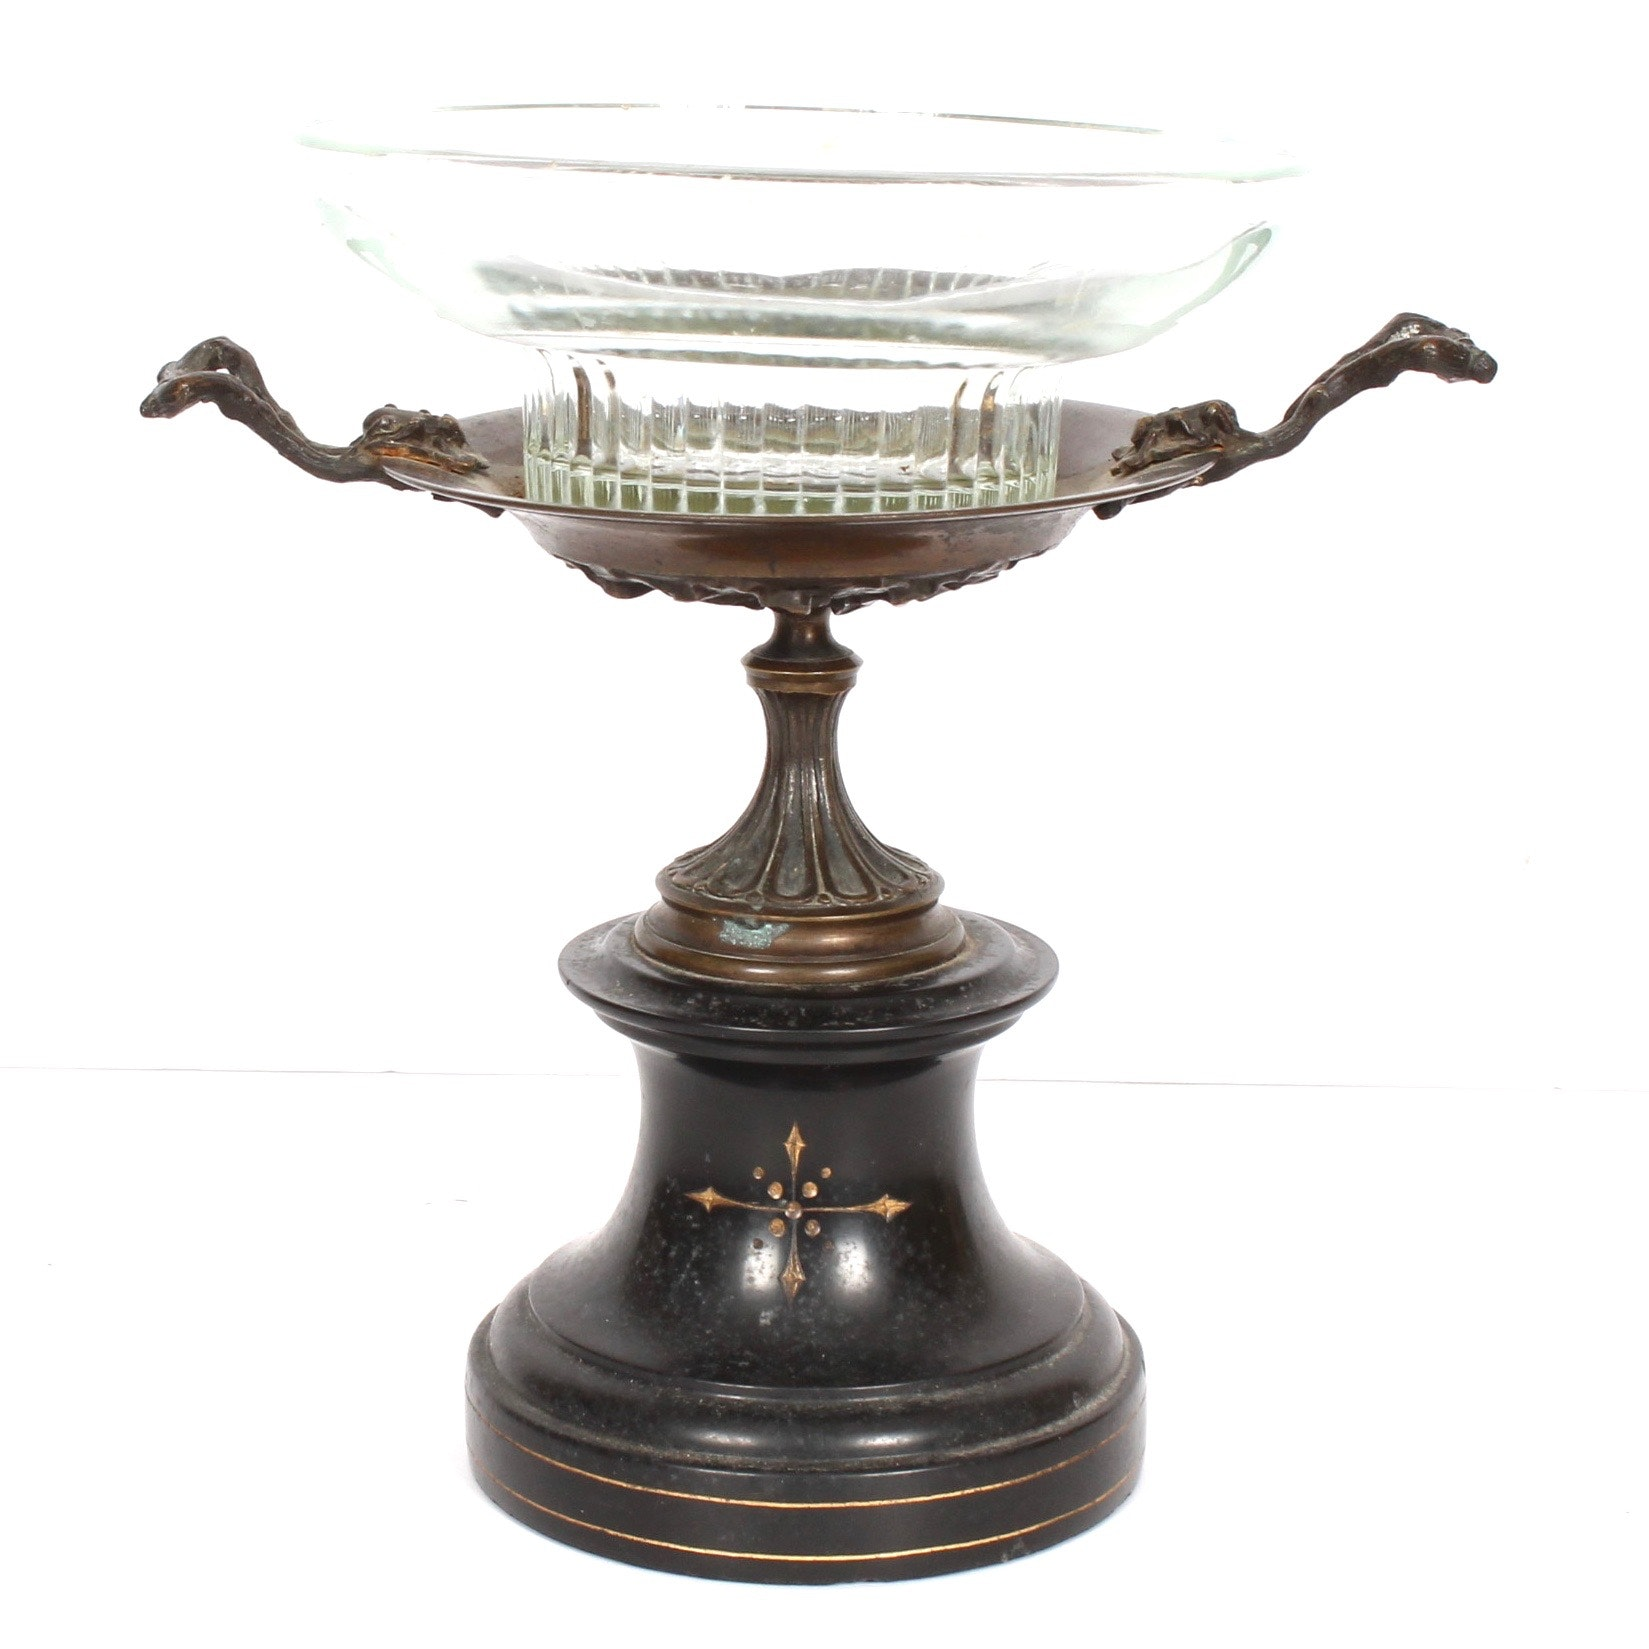 Antique French Glass and Bronze Compote on Marble Plinth